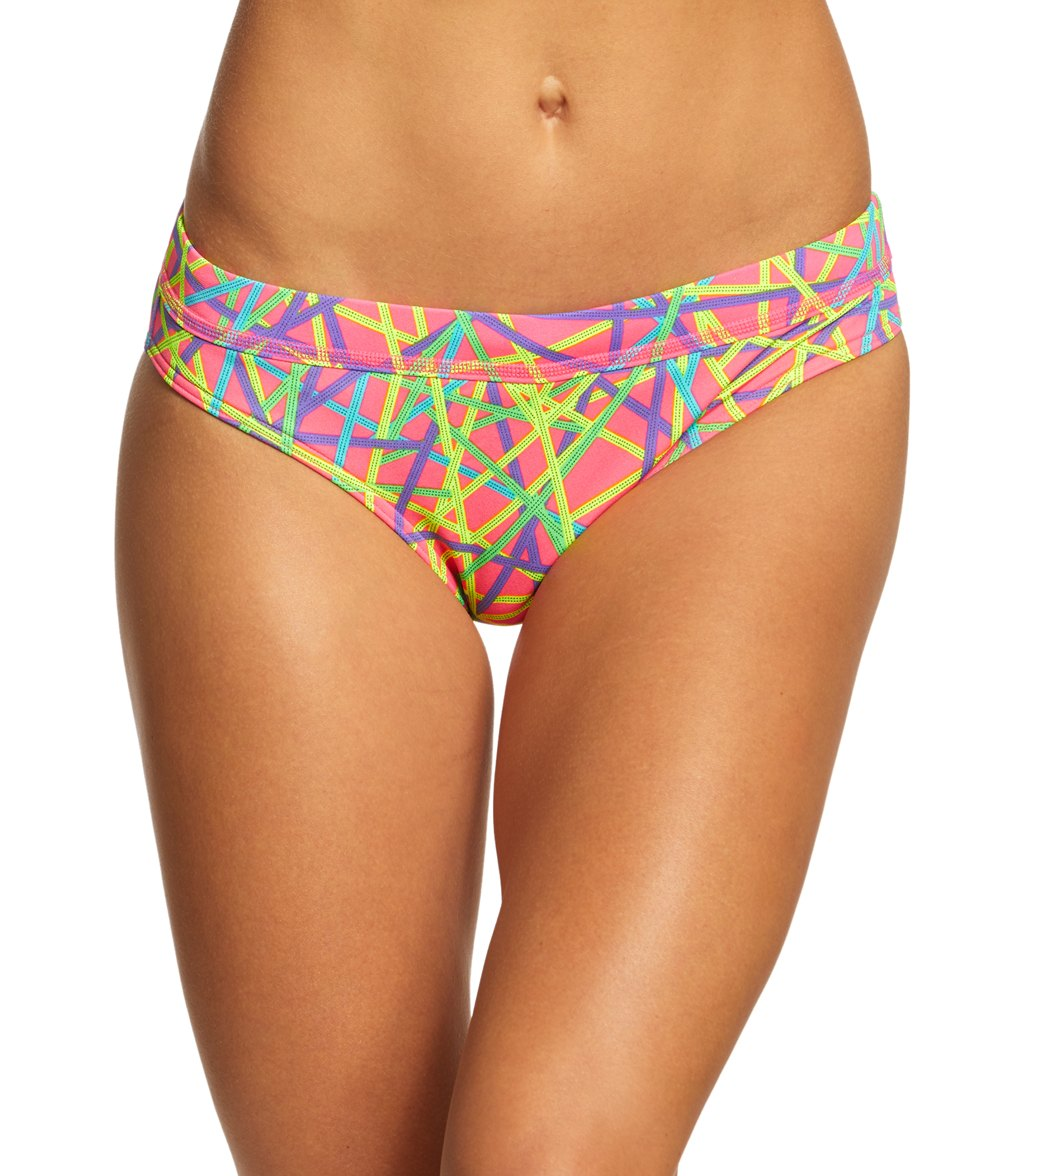 39751a48f4de0 Funkita Women's Bound Up Sports Brief Bikini Bottom at SwimOutlet.com